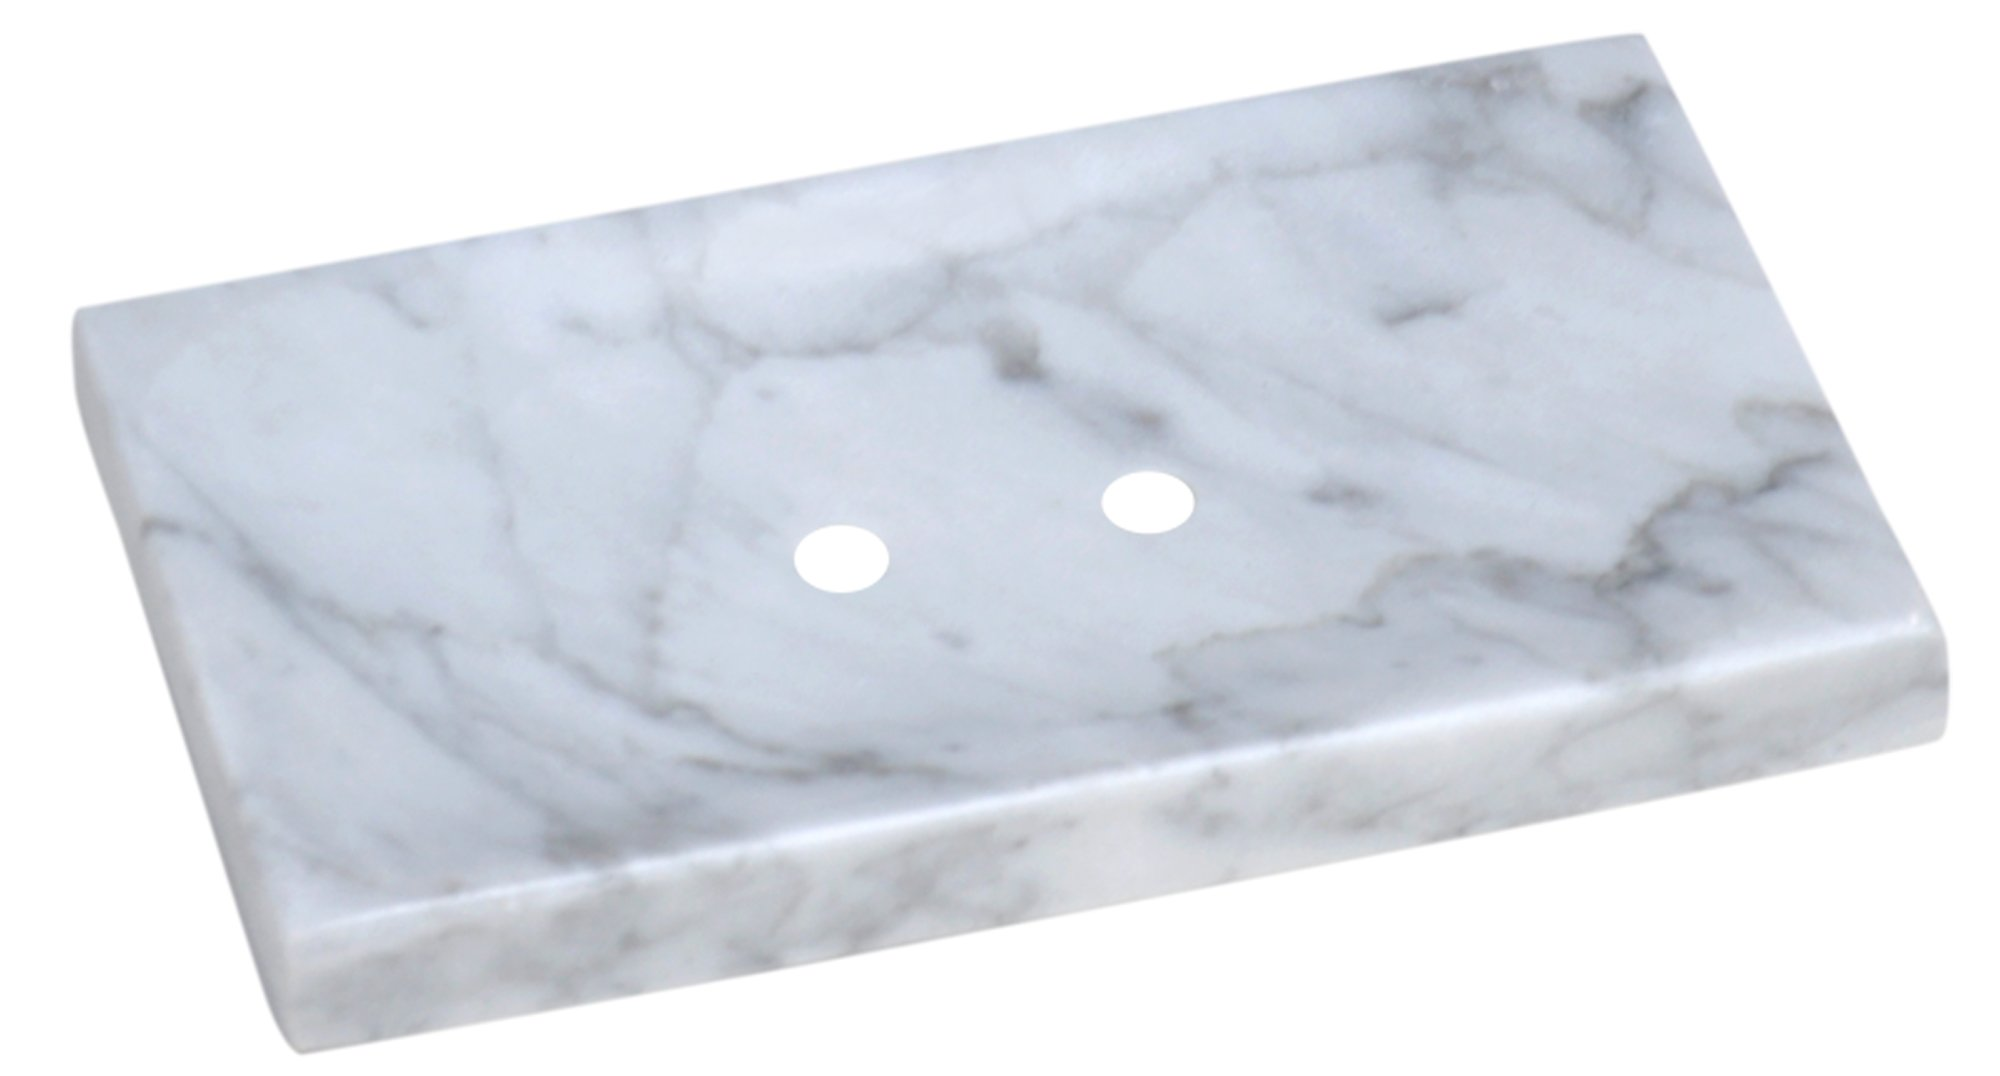 CraftsOfEgypt White Marble Soap Dish - Polished and Shiny Marble Dish Holder Beautifully Crafted Bathroom Accessory by CraftsOfEgypt